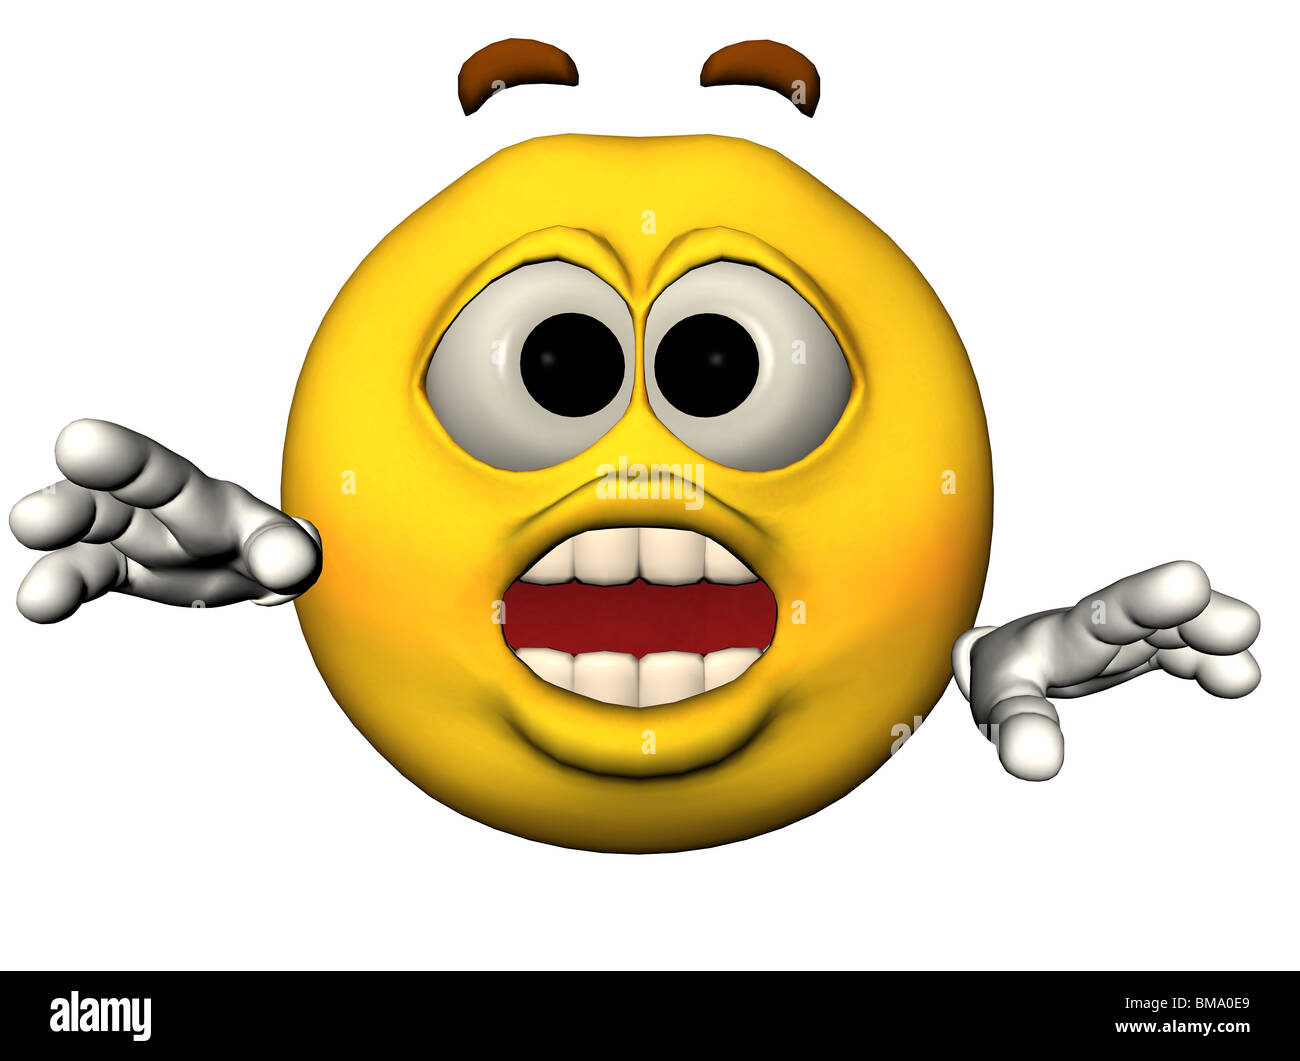 3D illustration of a surprised emoticon - Stock Image